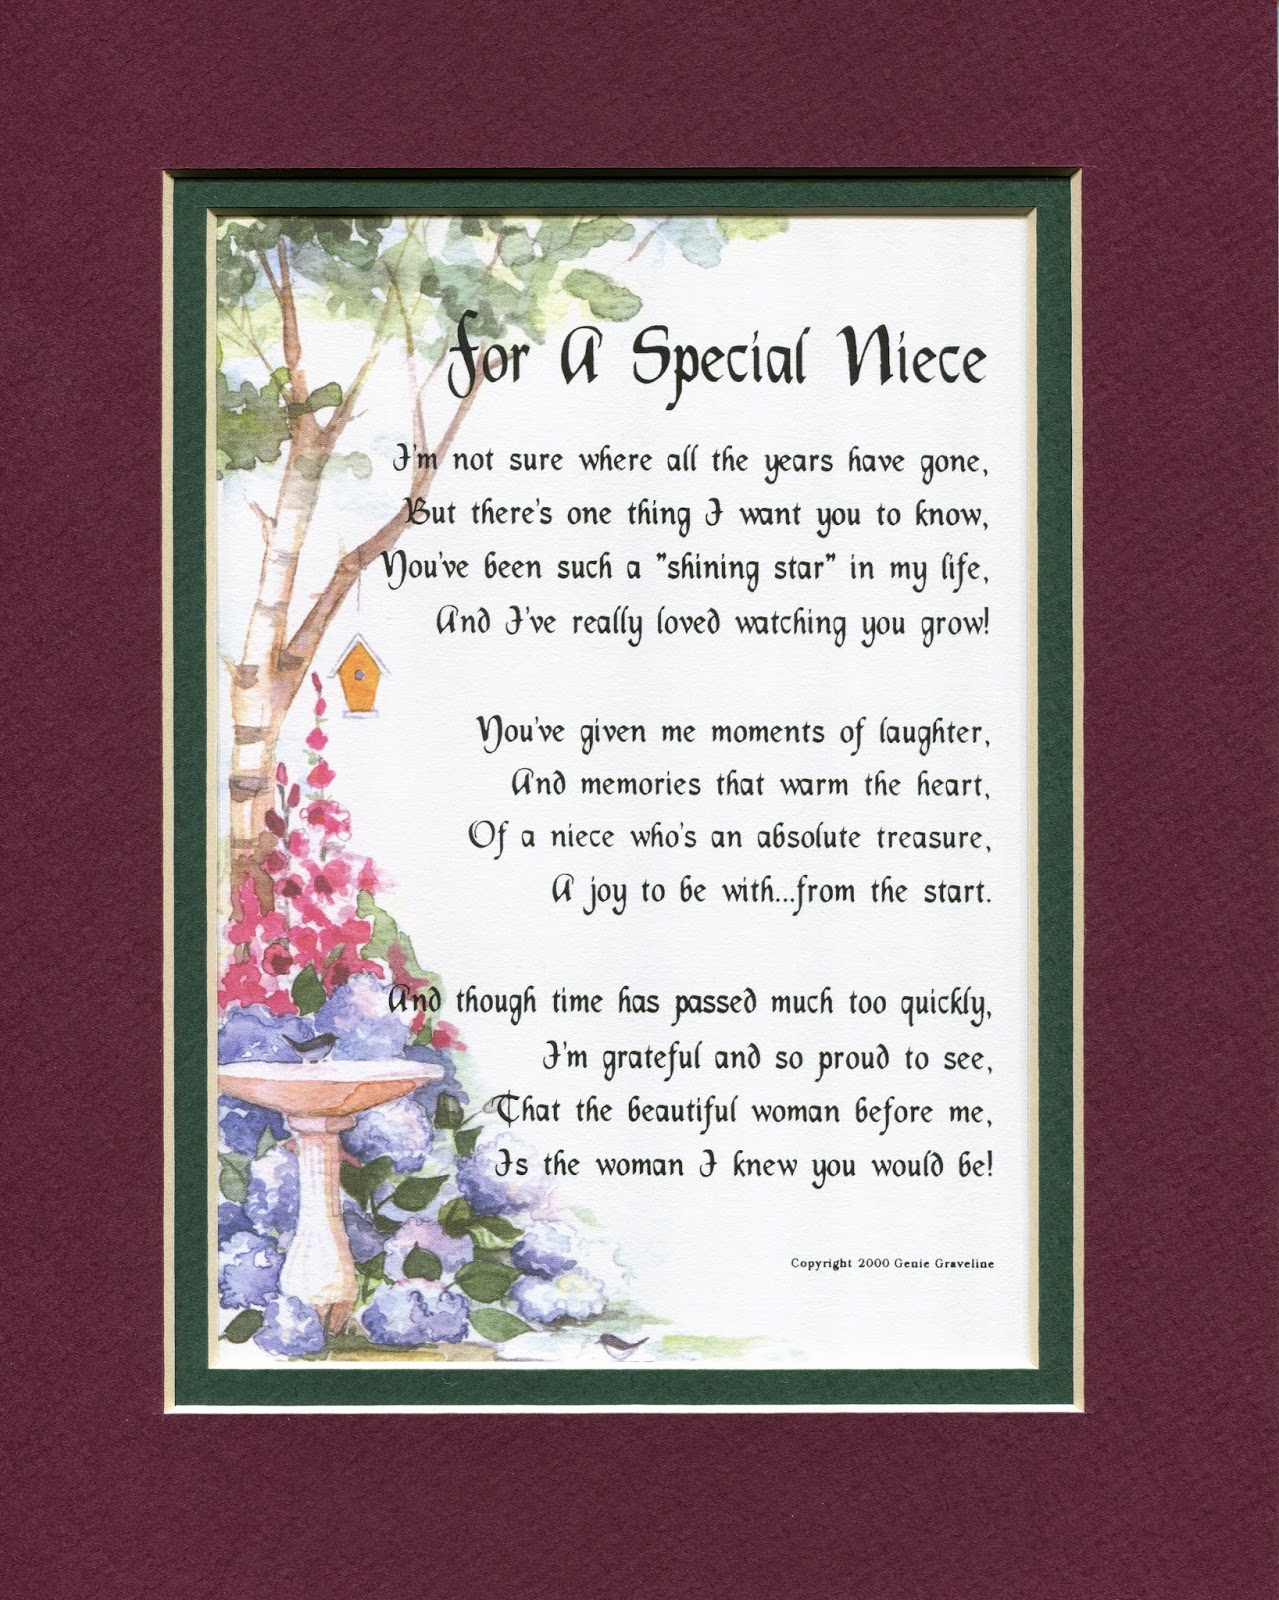 Genie's Poems: For A Special Niece